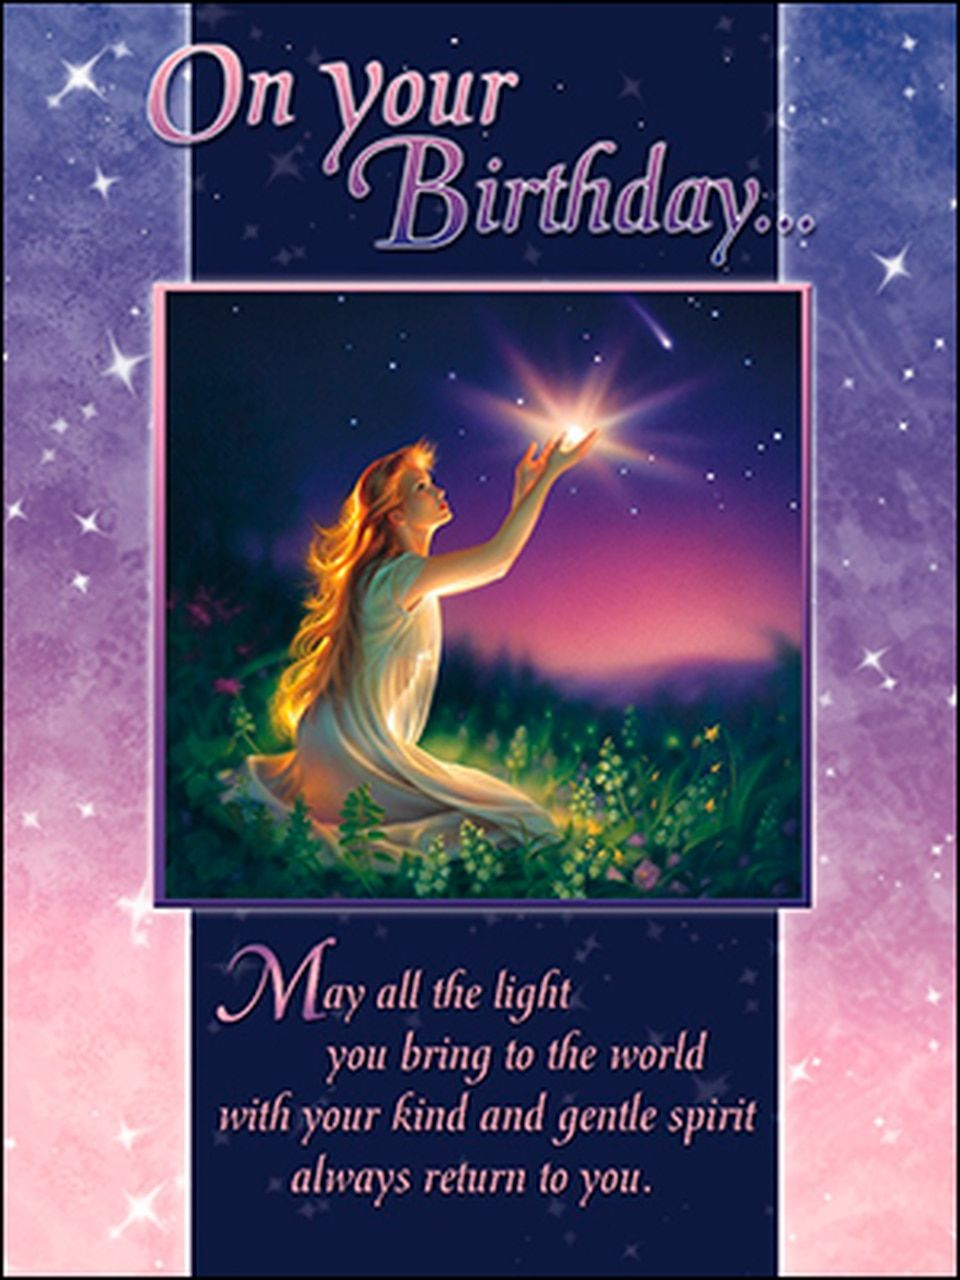 Birthday card wishing you a bright and happy year ahead